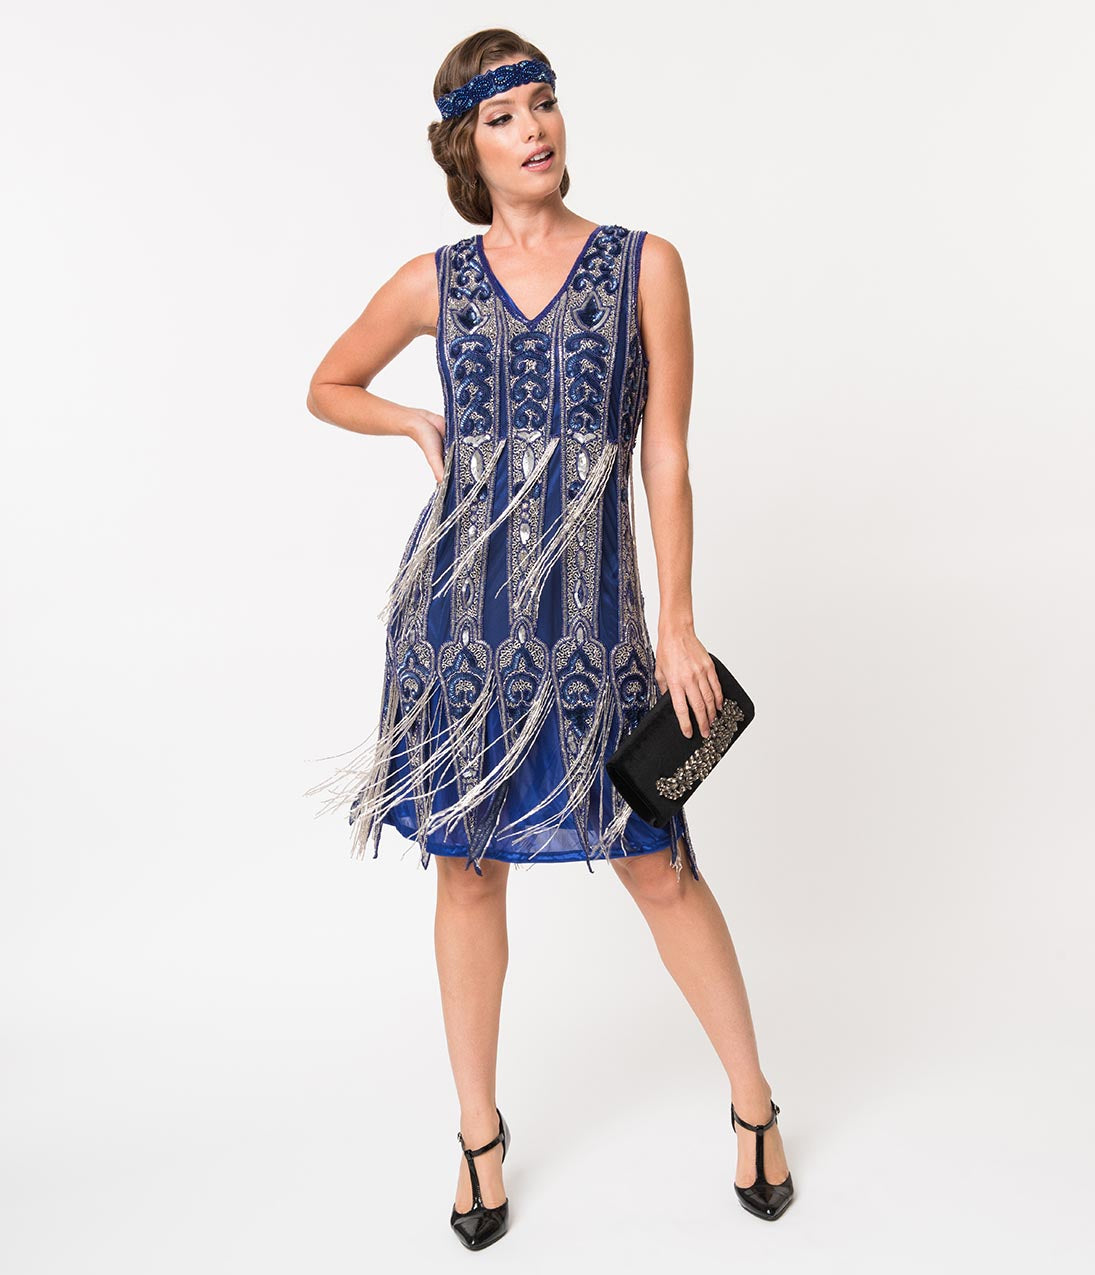 1920s Evening Dresses & Formal Gowns Vintage Style Royal Blue  Silver Beaded Fringe Flapper Dress $358.00 AT vintagedancer.com